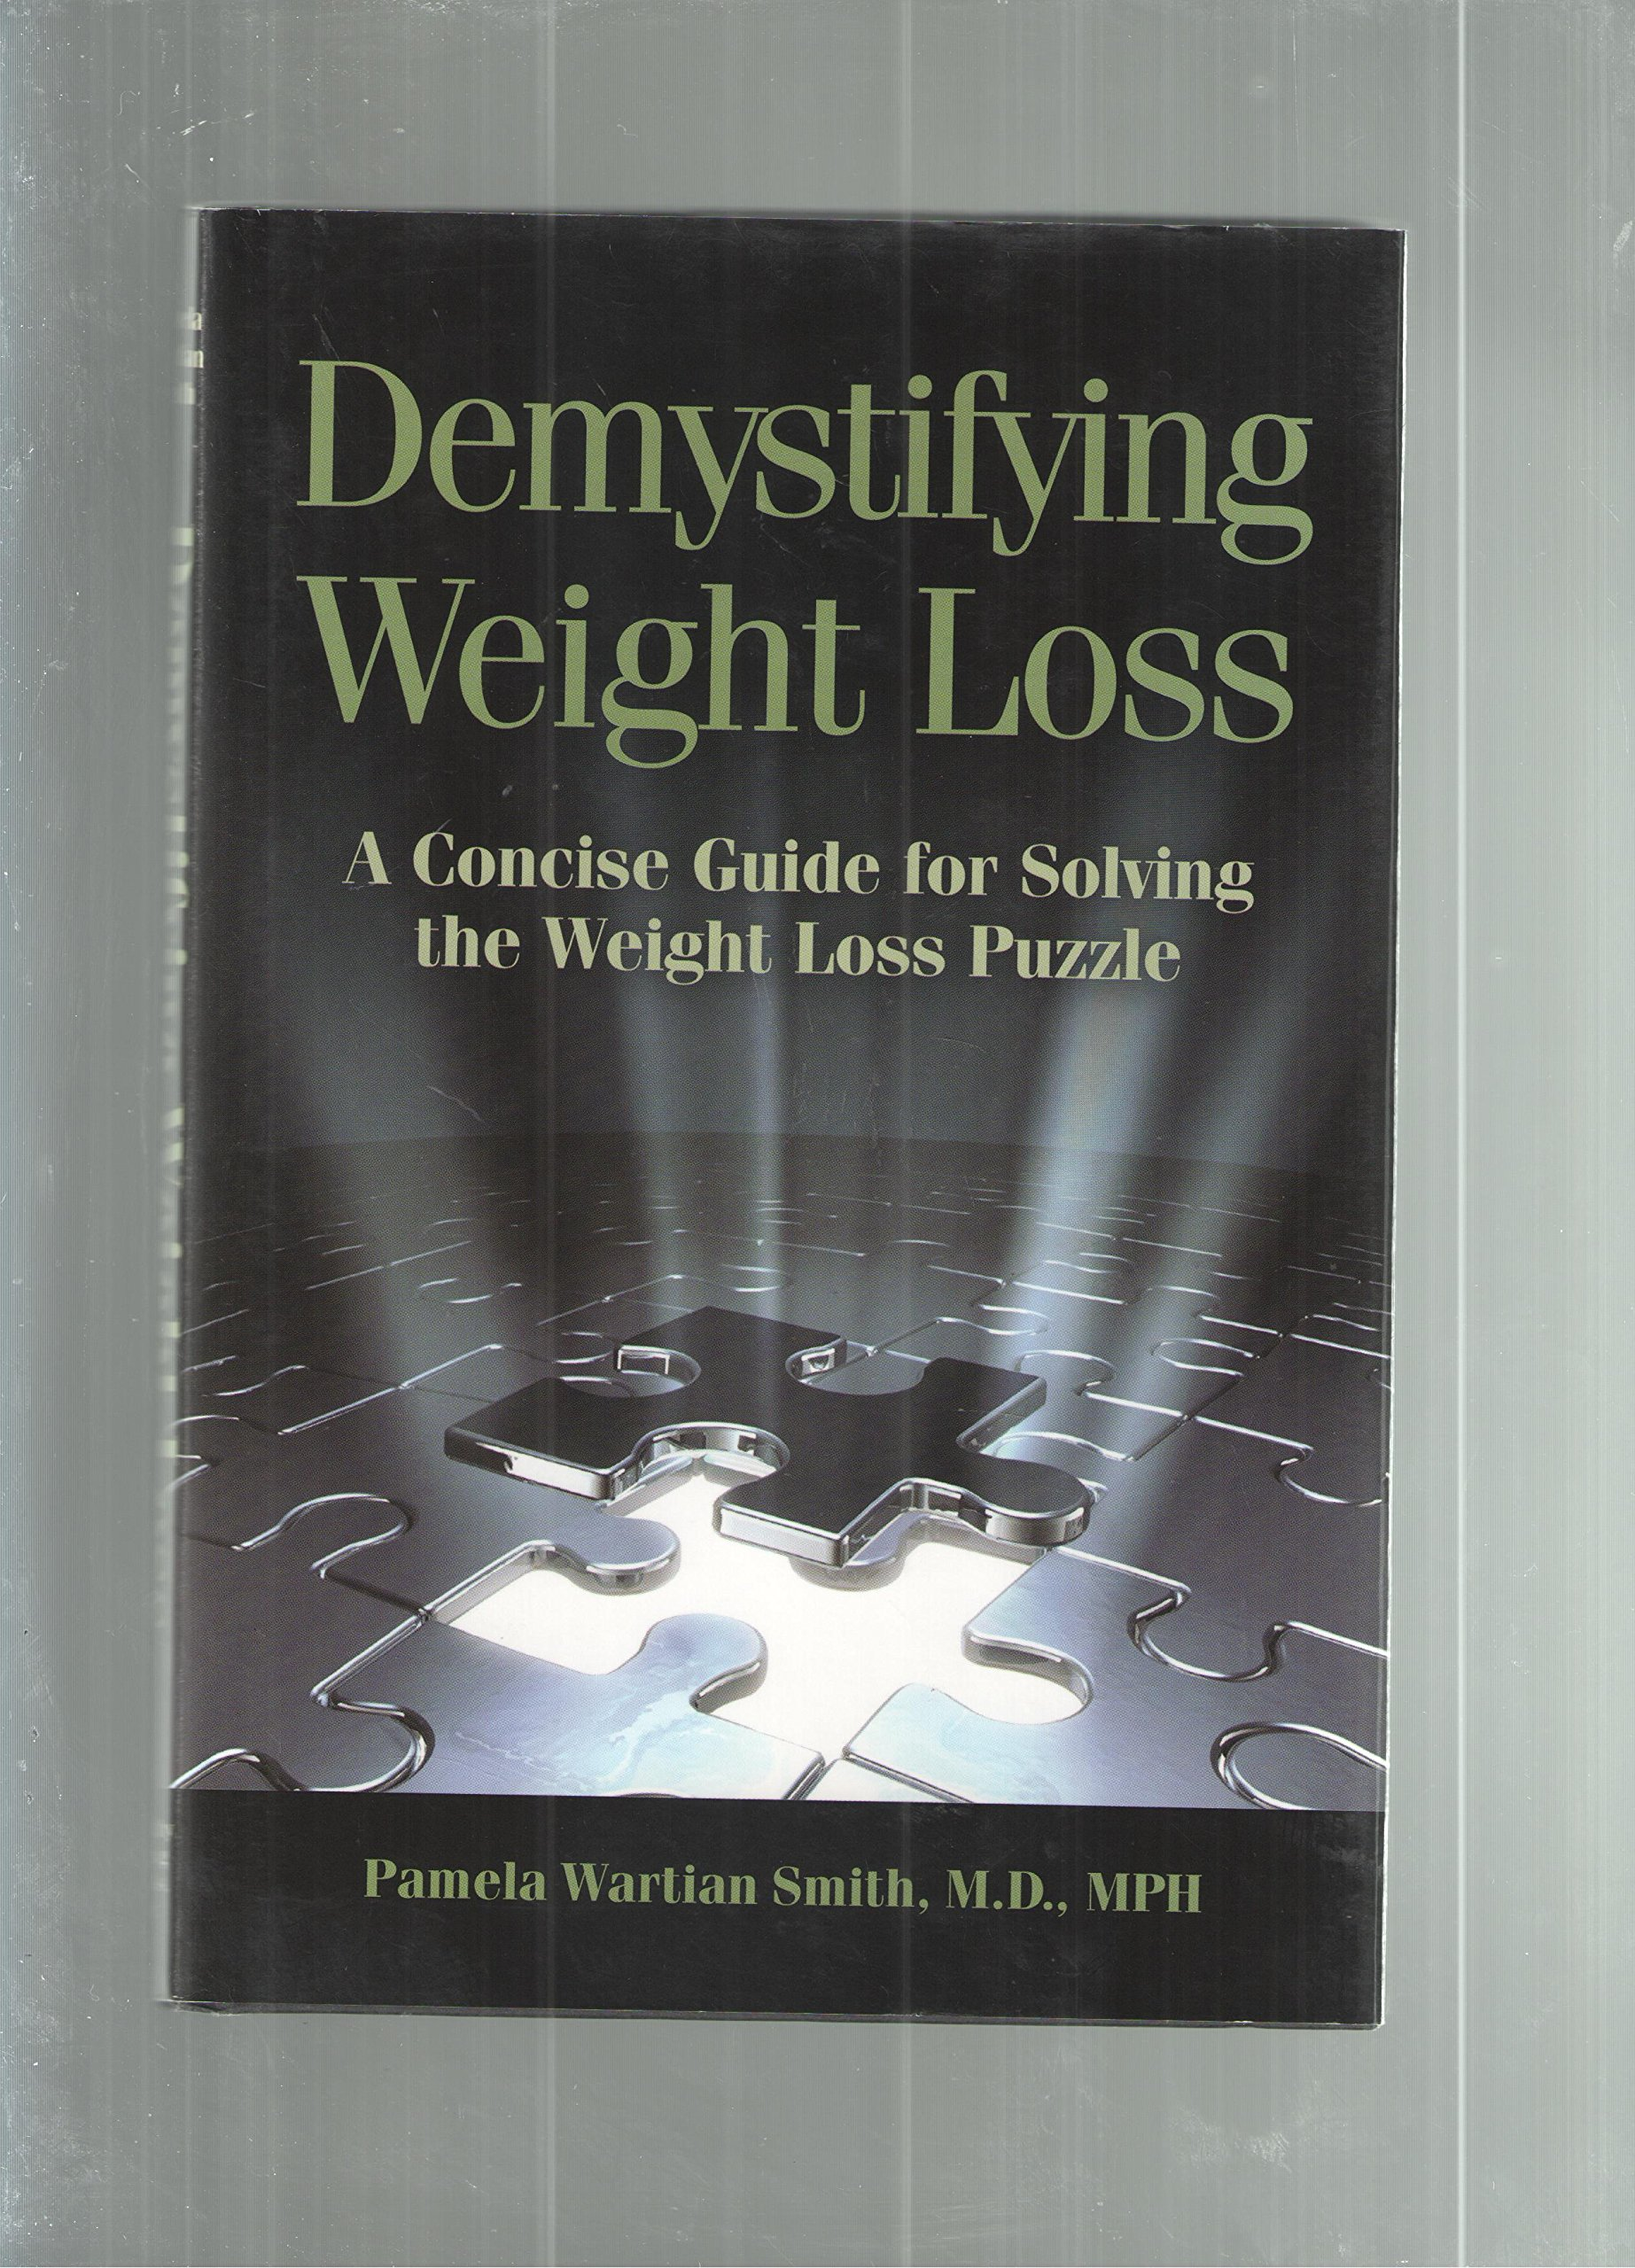 Does spitting help lose water weight image 6